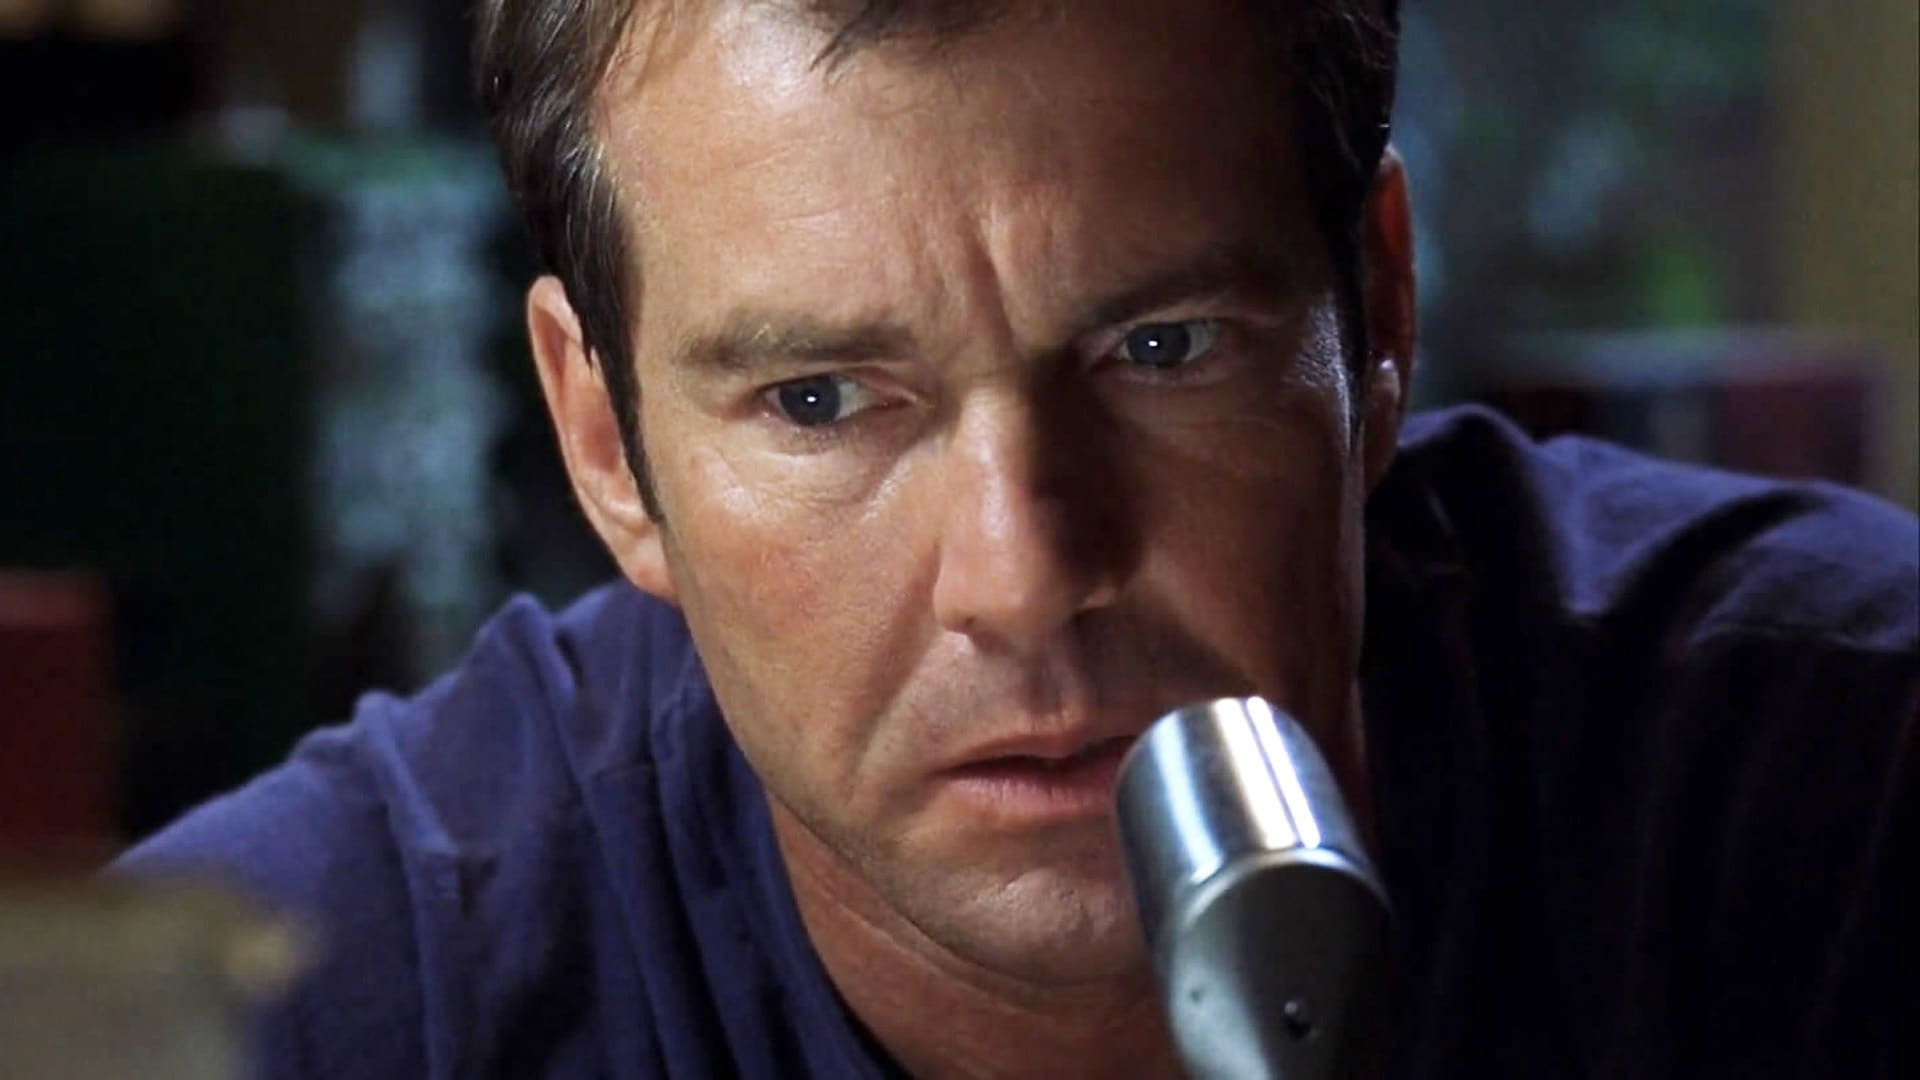 Dennis Quaid communicating by radio in Frequency (2000)